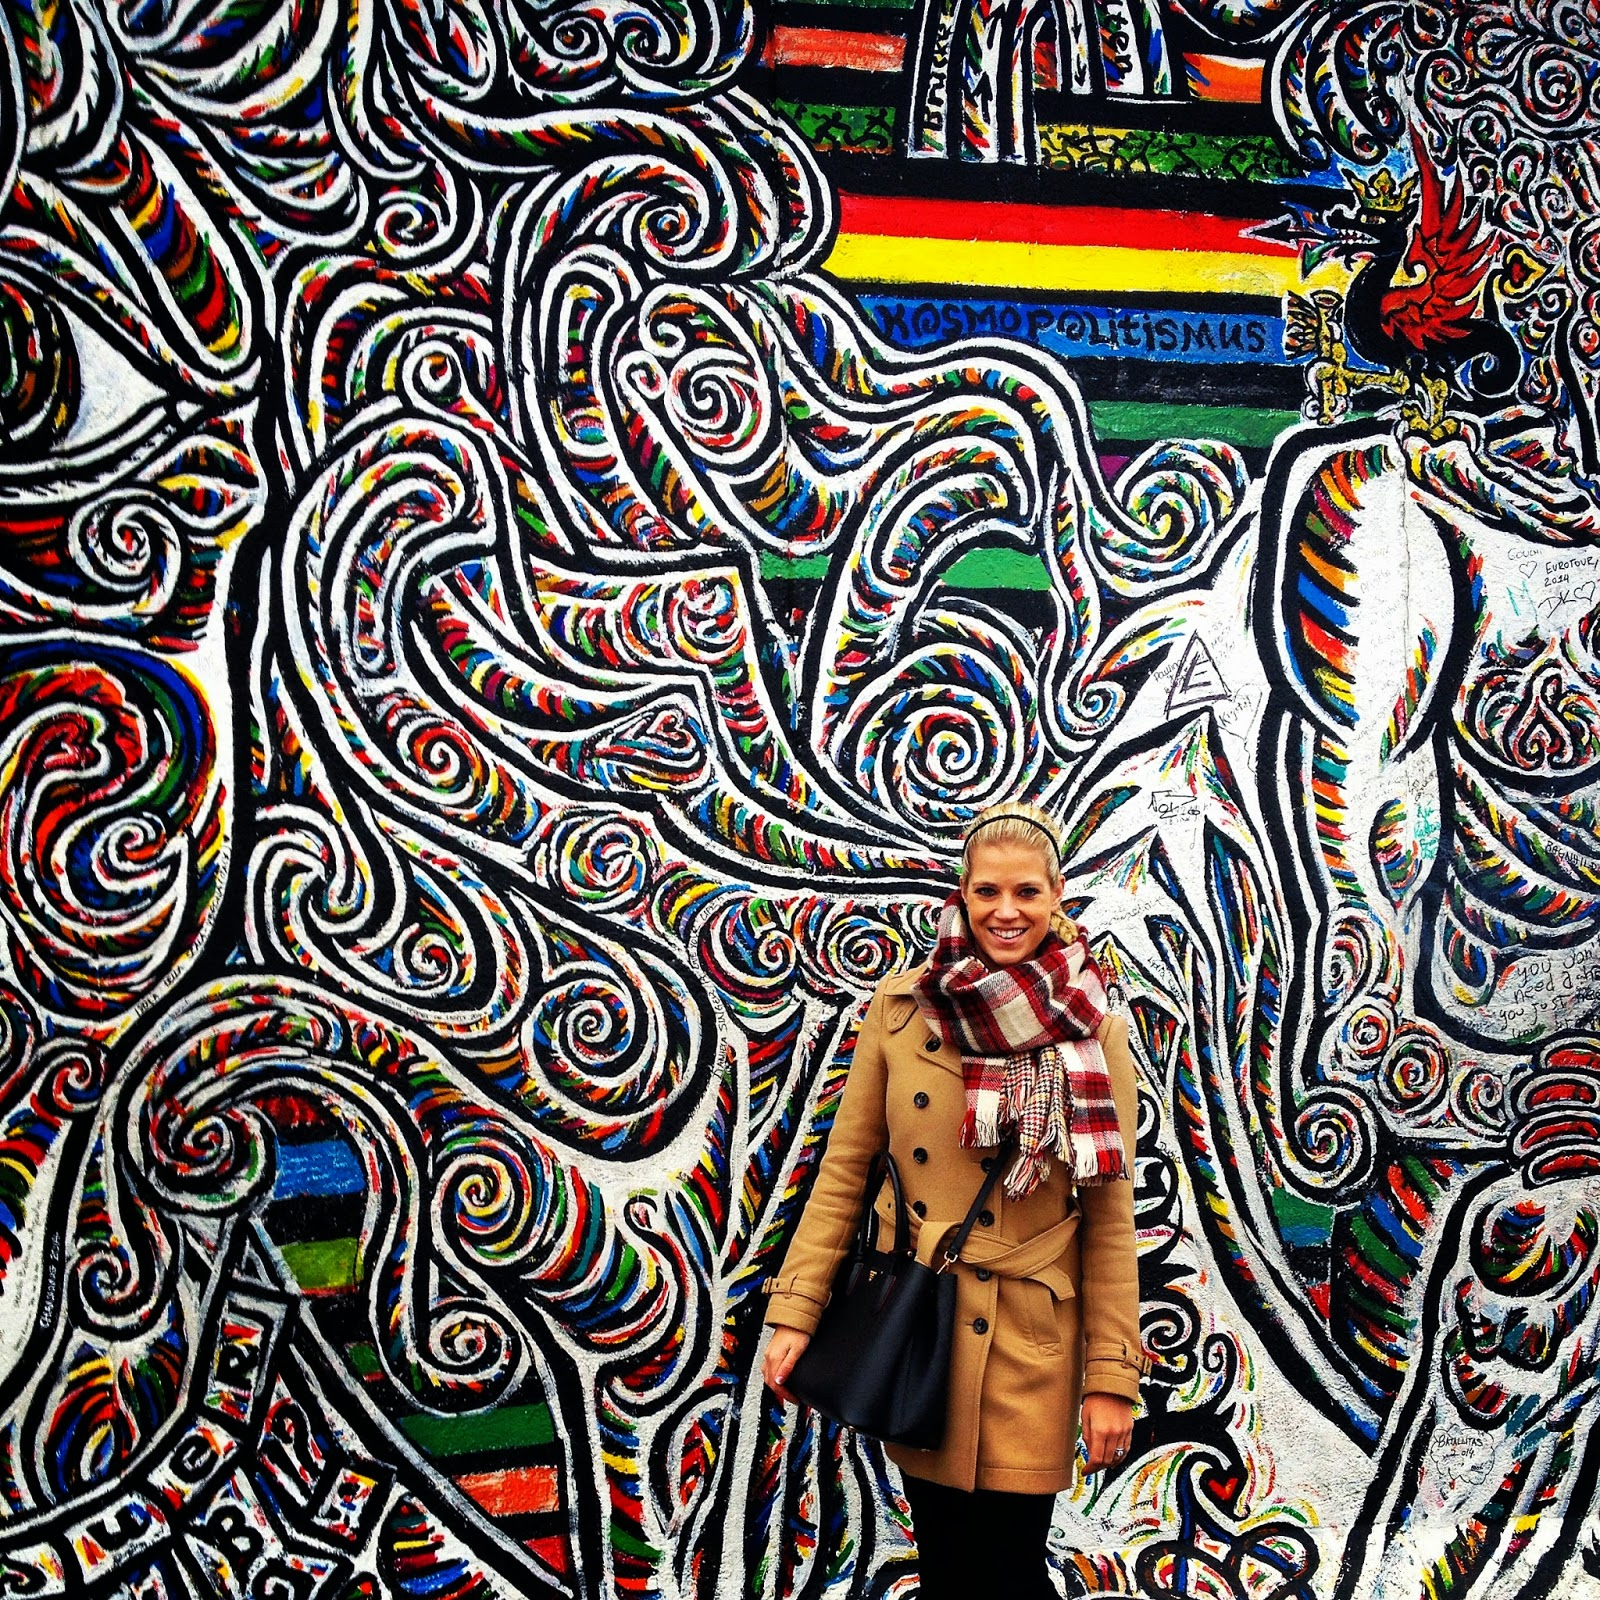 East Side Gallery paintings